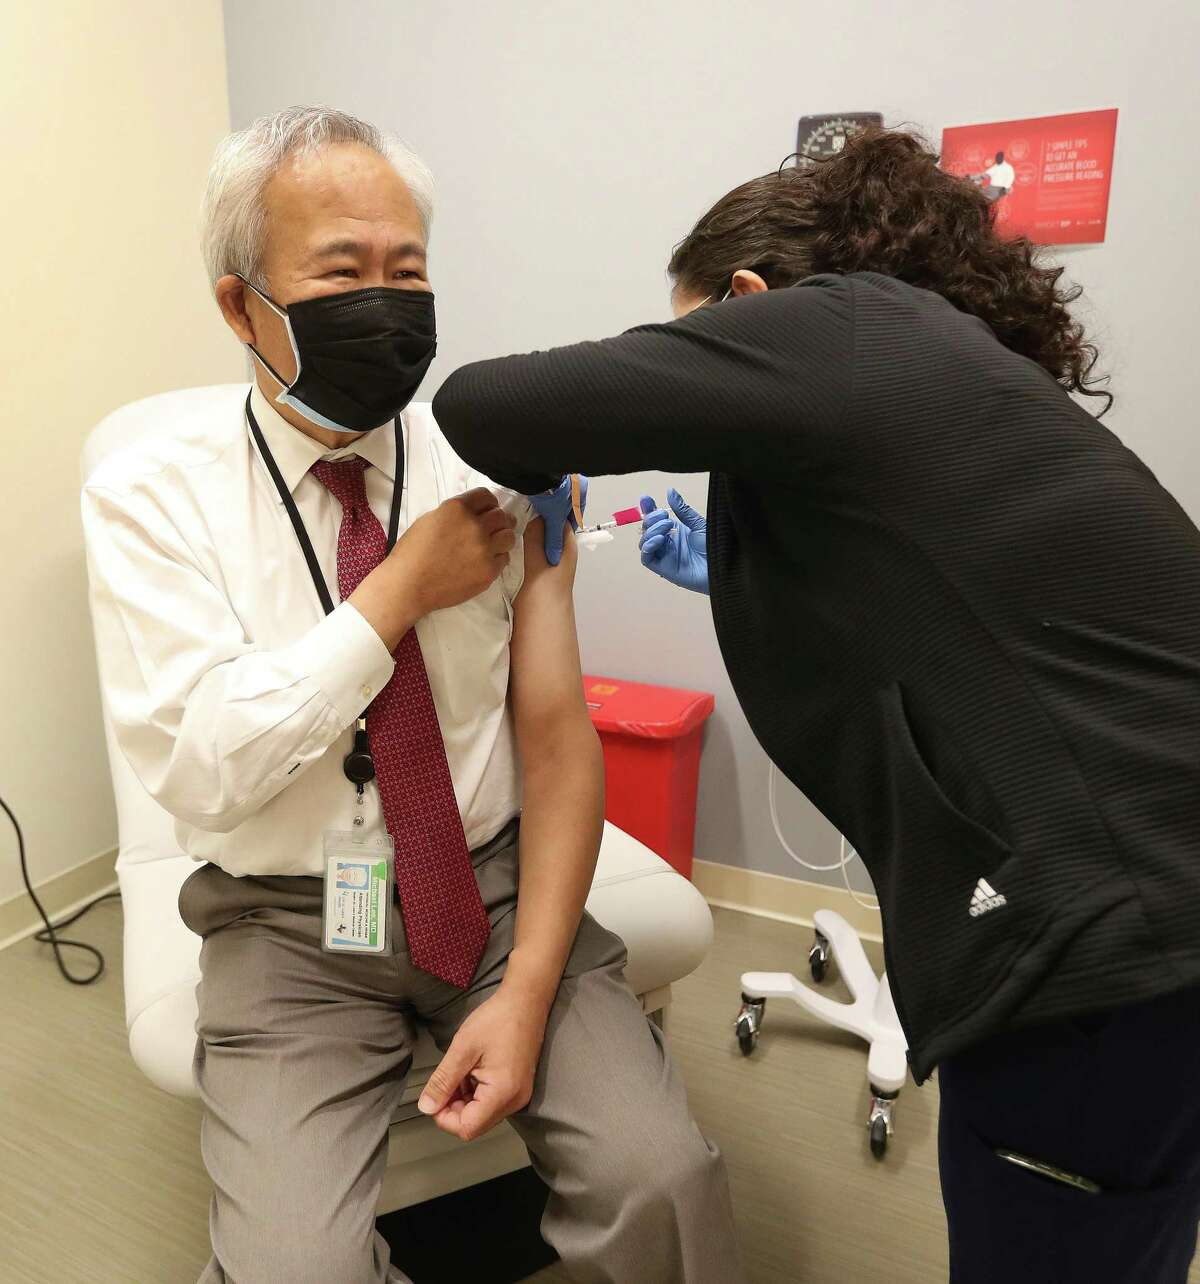 Kimberly Acosta, CMA, gives Dr. Michael Lee, Professor and Chair, H. Ben Taub Department of Physical Medicine and Rehabilitation, Baylor College of Medicine, his third dose of the Pfizer vaccine, as a booster, at Baylor College of Medicine, Friday, September 24, 2021, in Houston, after the CDC gave boosters the go ahead last night.